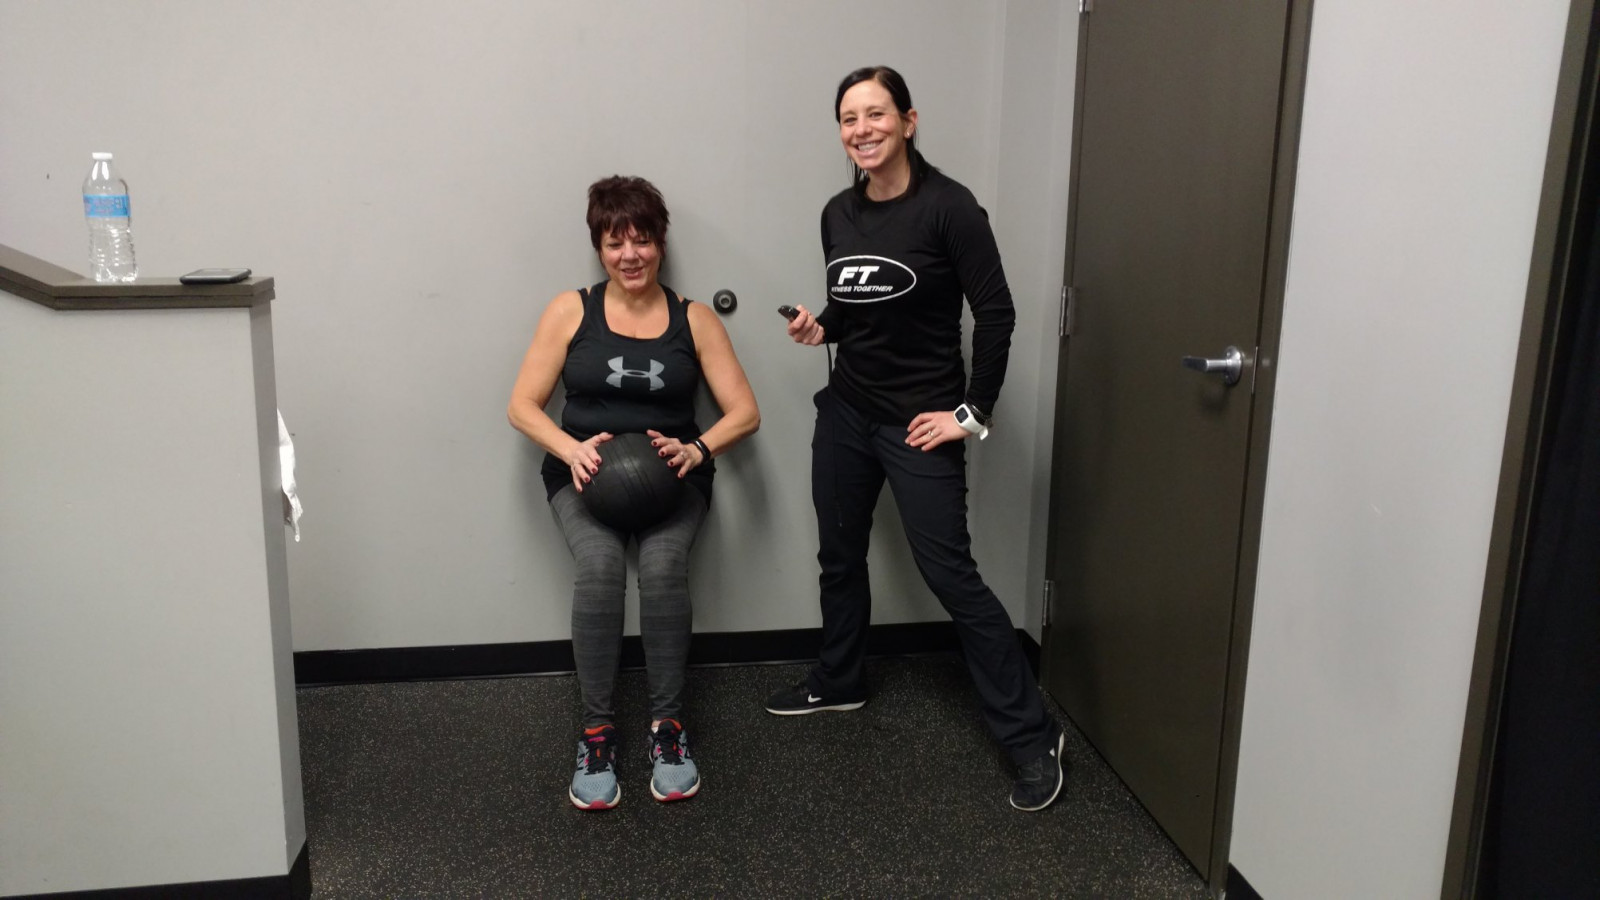 fitness-together-personal-trainer-client-results-active-lifestyle